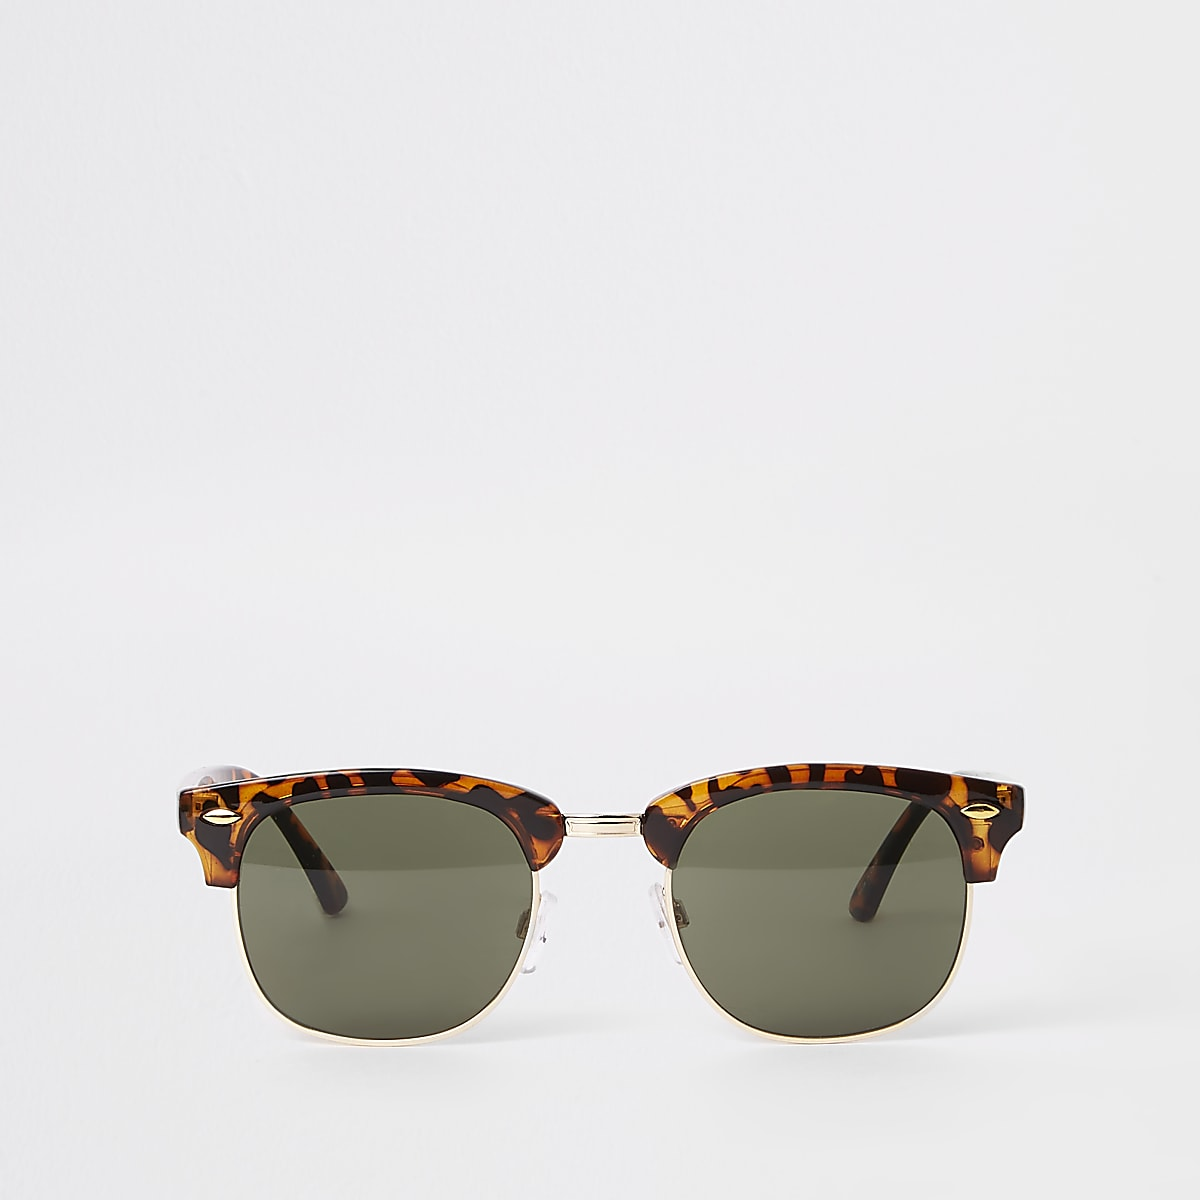 Selected Homme brown retro frame sunglasses